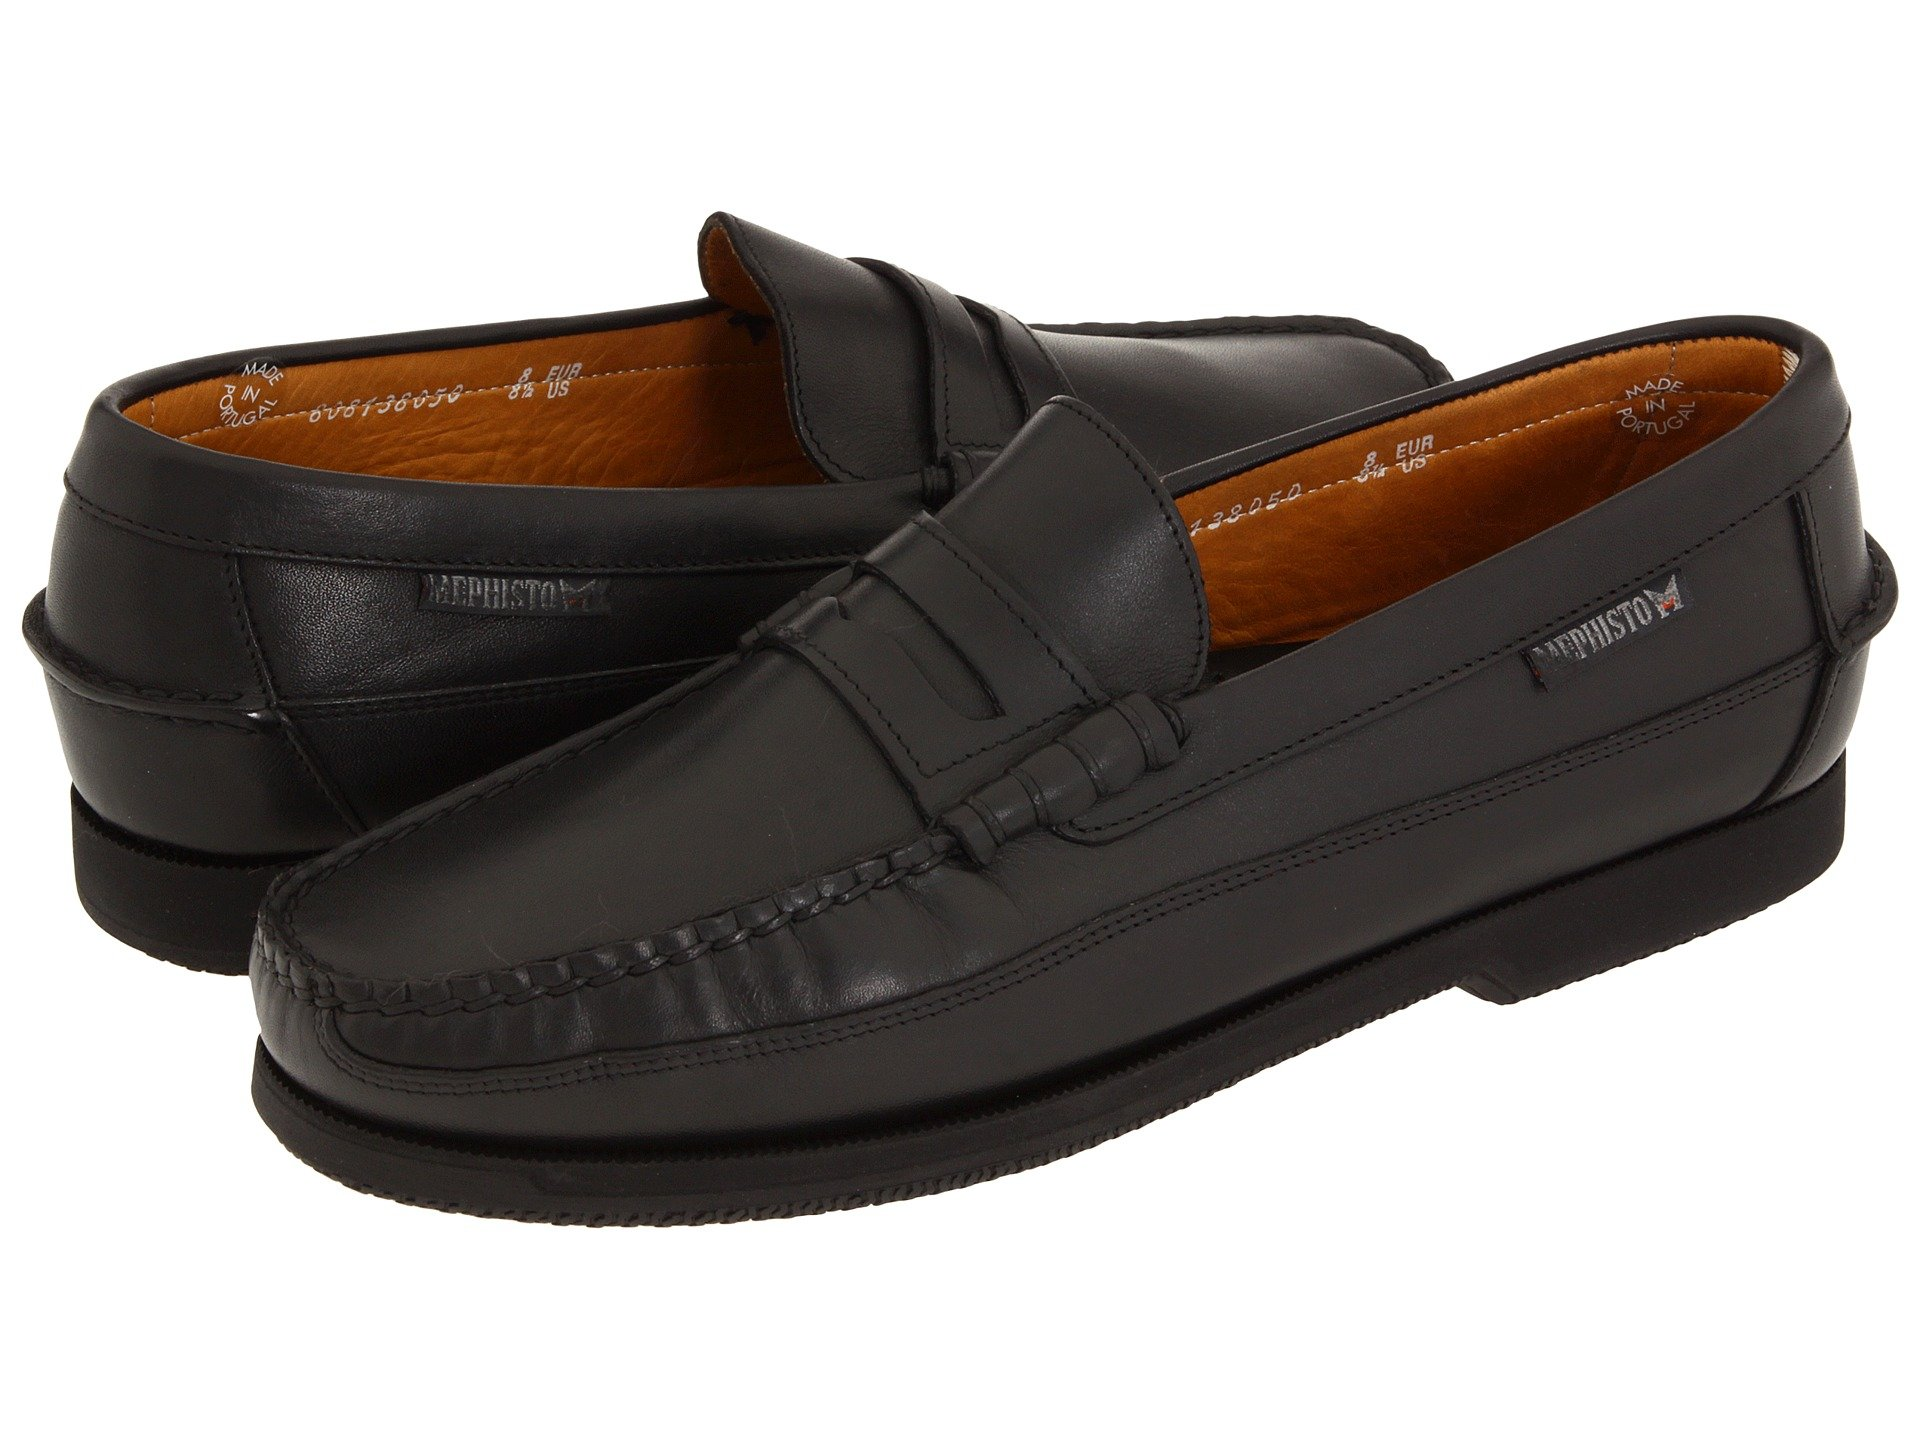 ccfdc4b600c Men s Mephisto Loafers + FREE SHIPPING